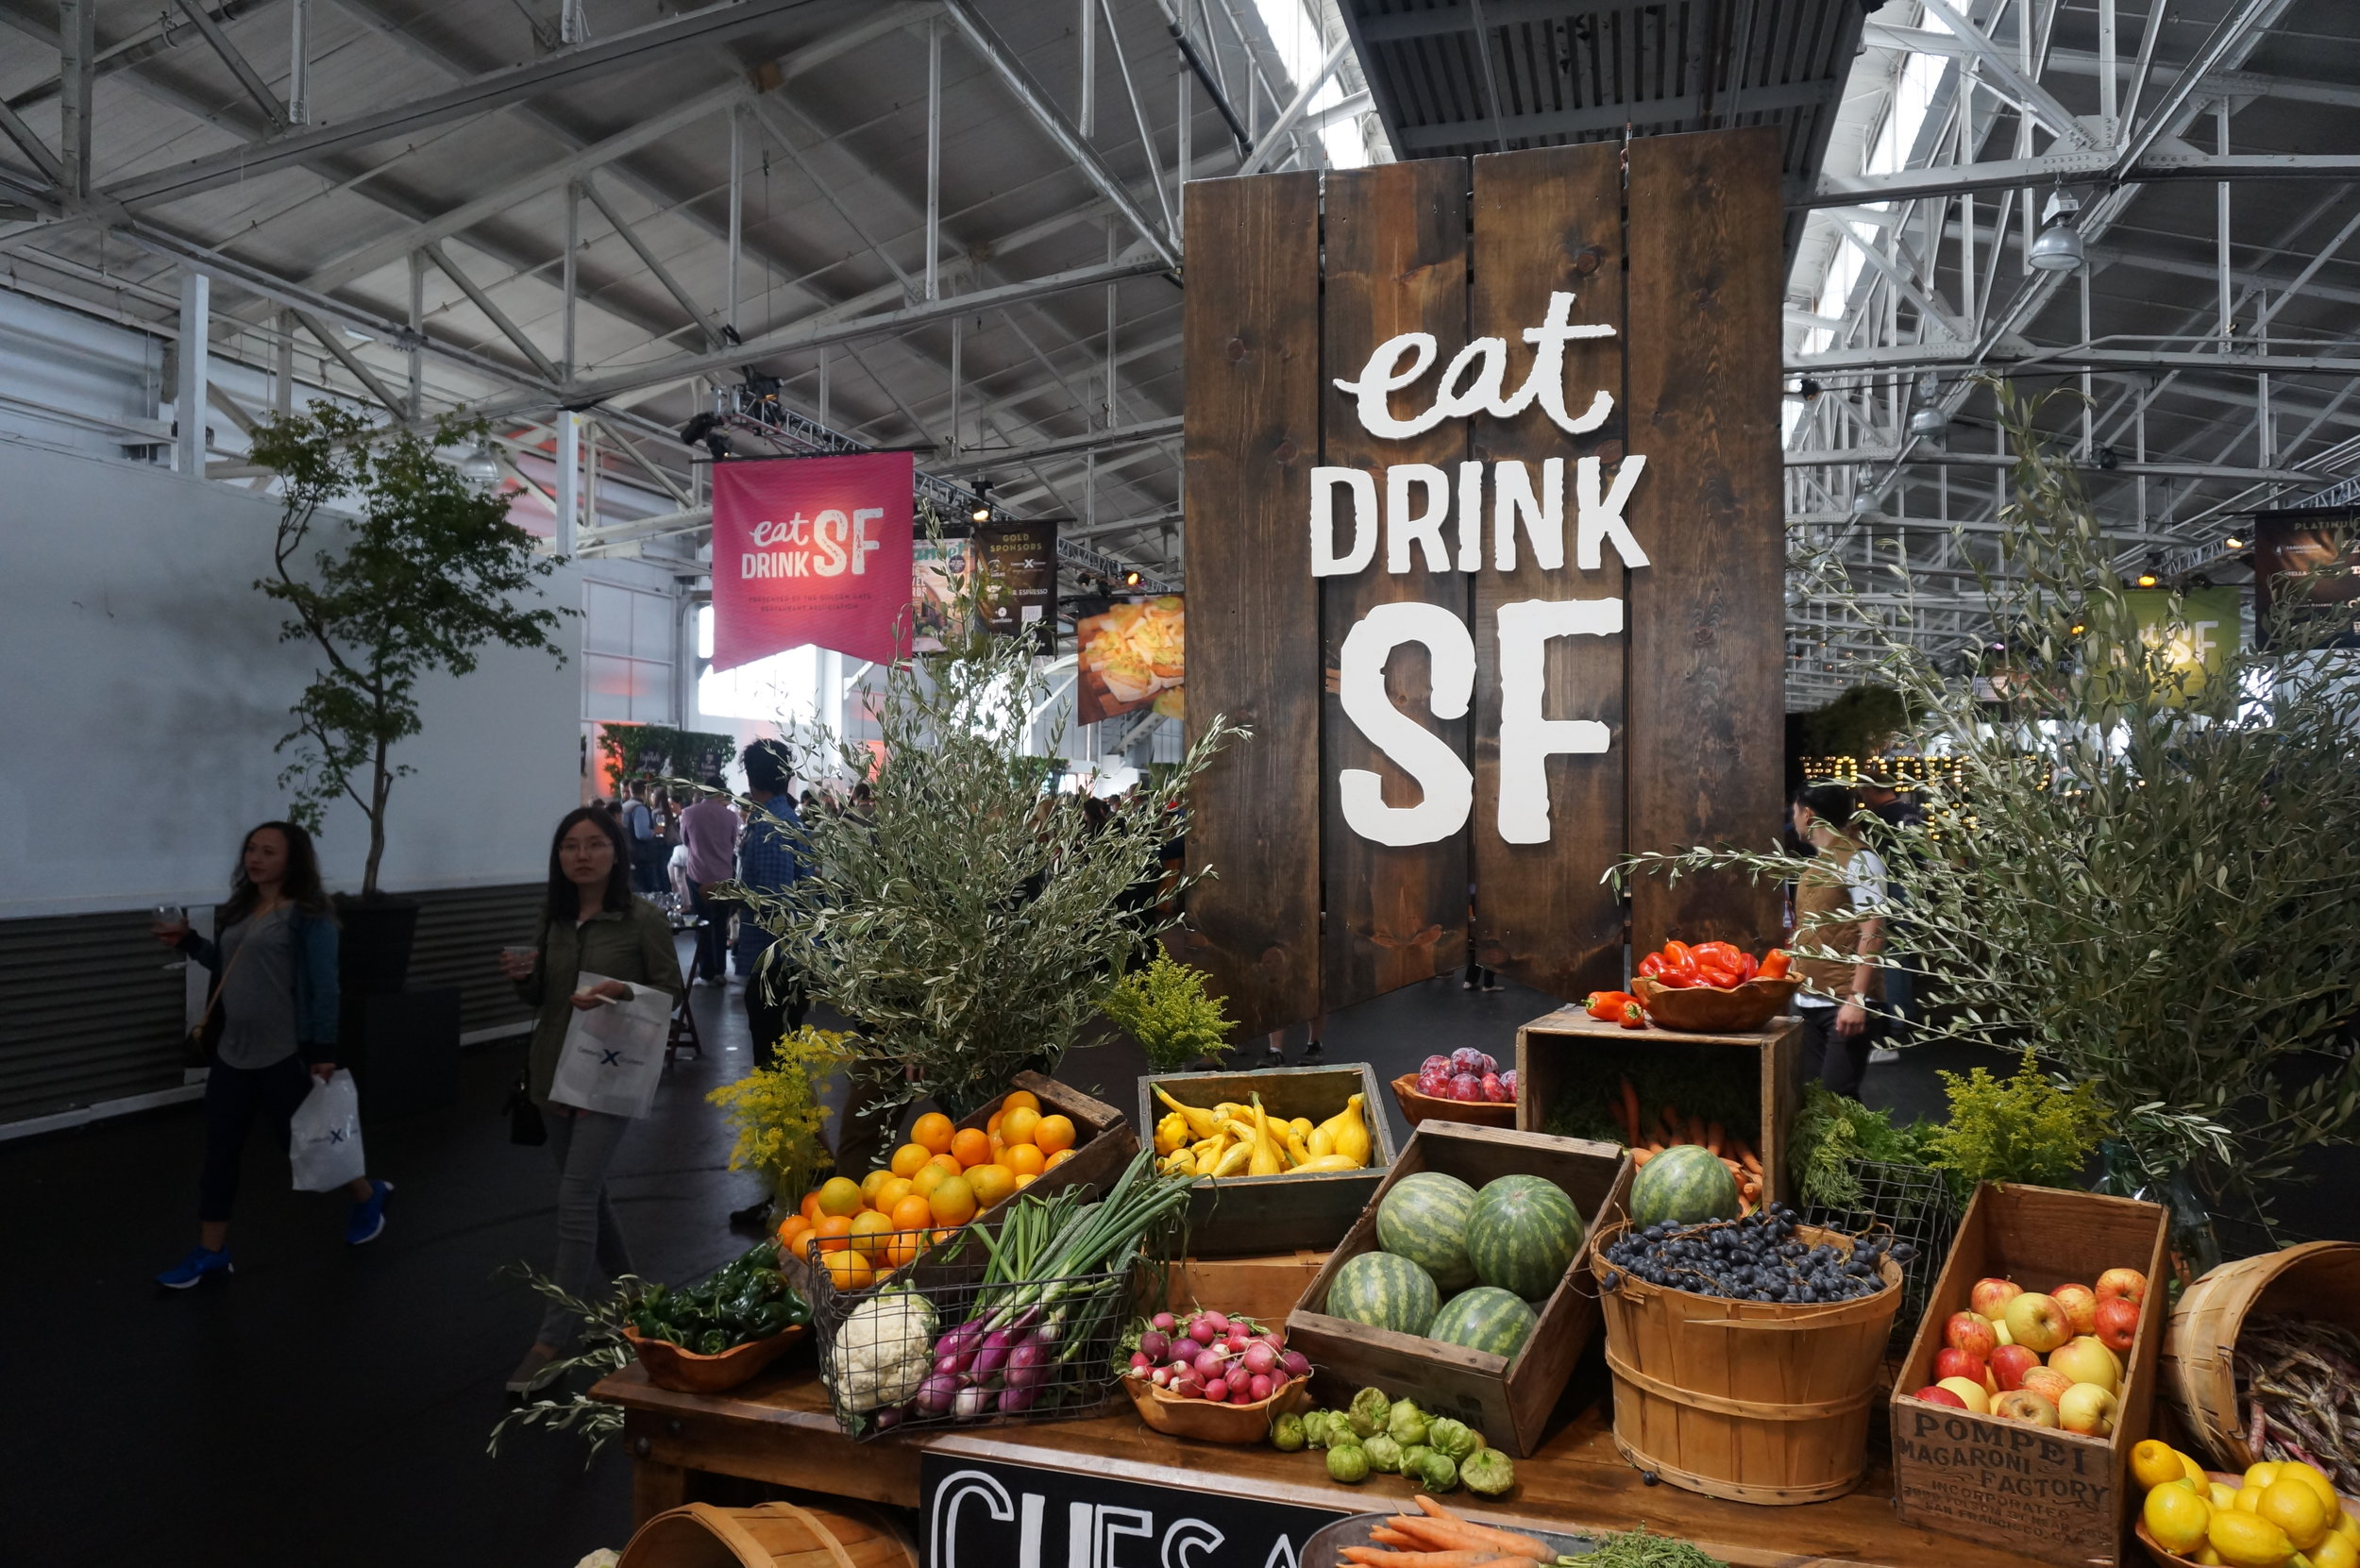 Eat Drink SF - A gastronomic party